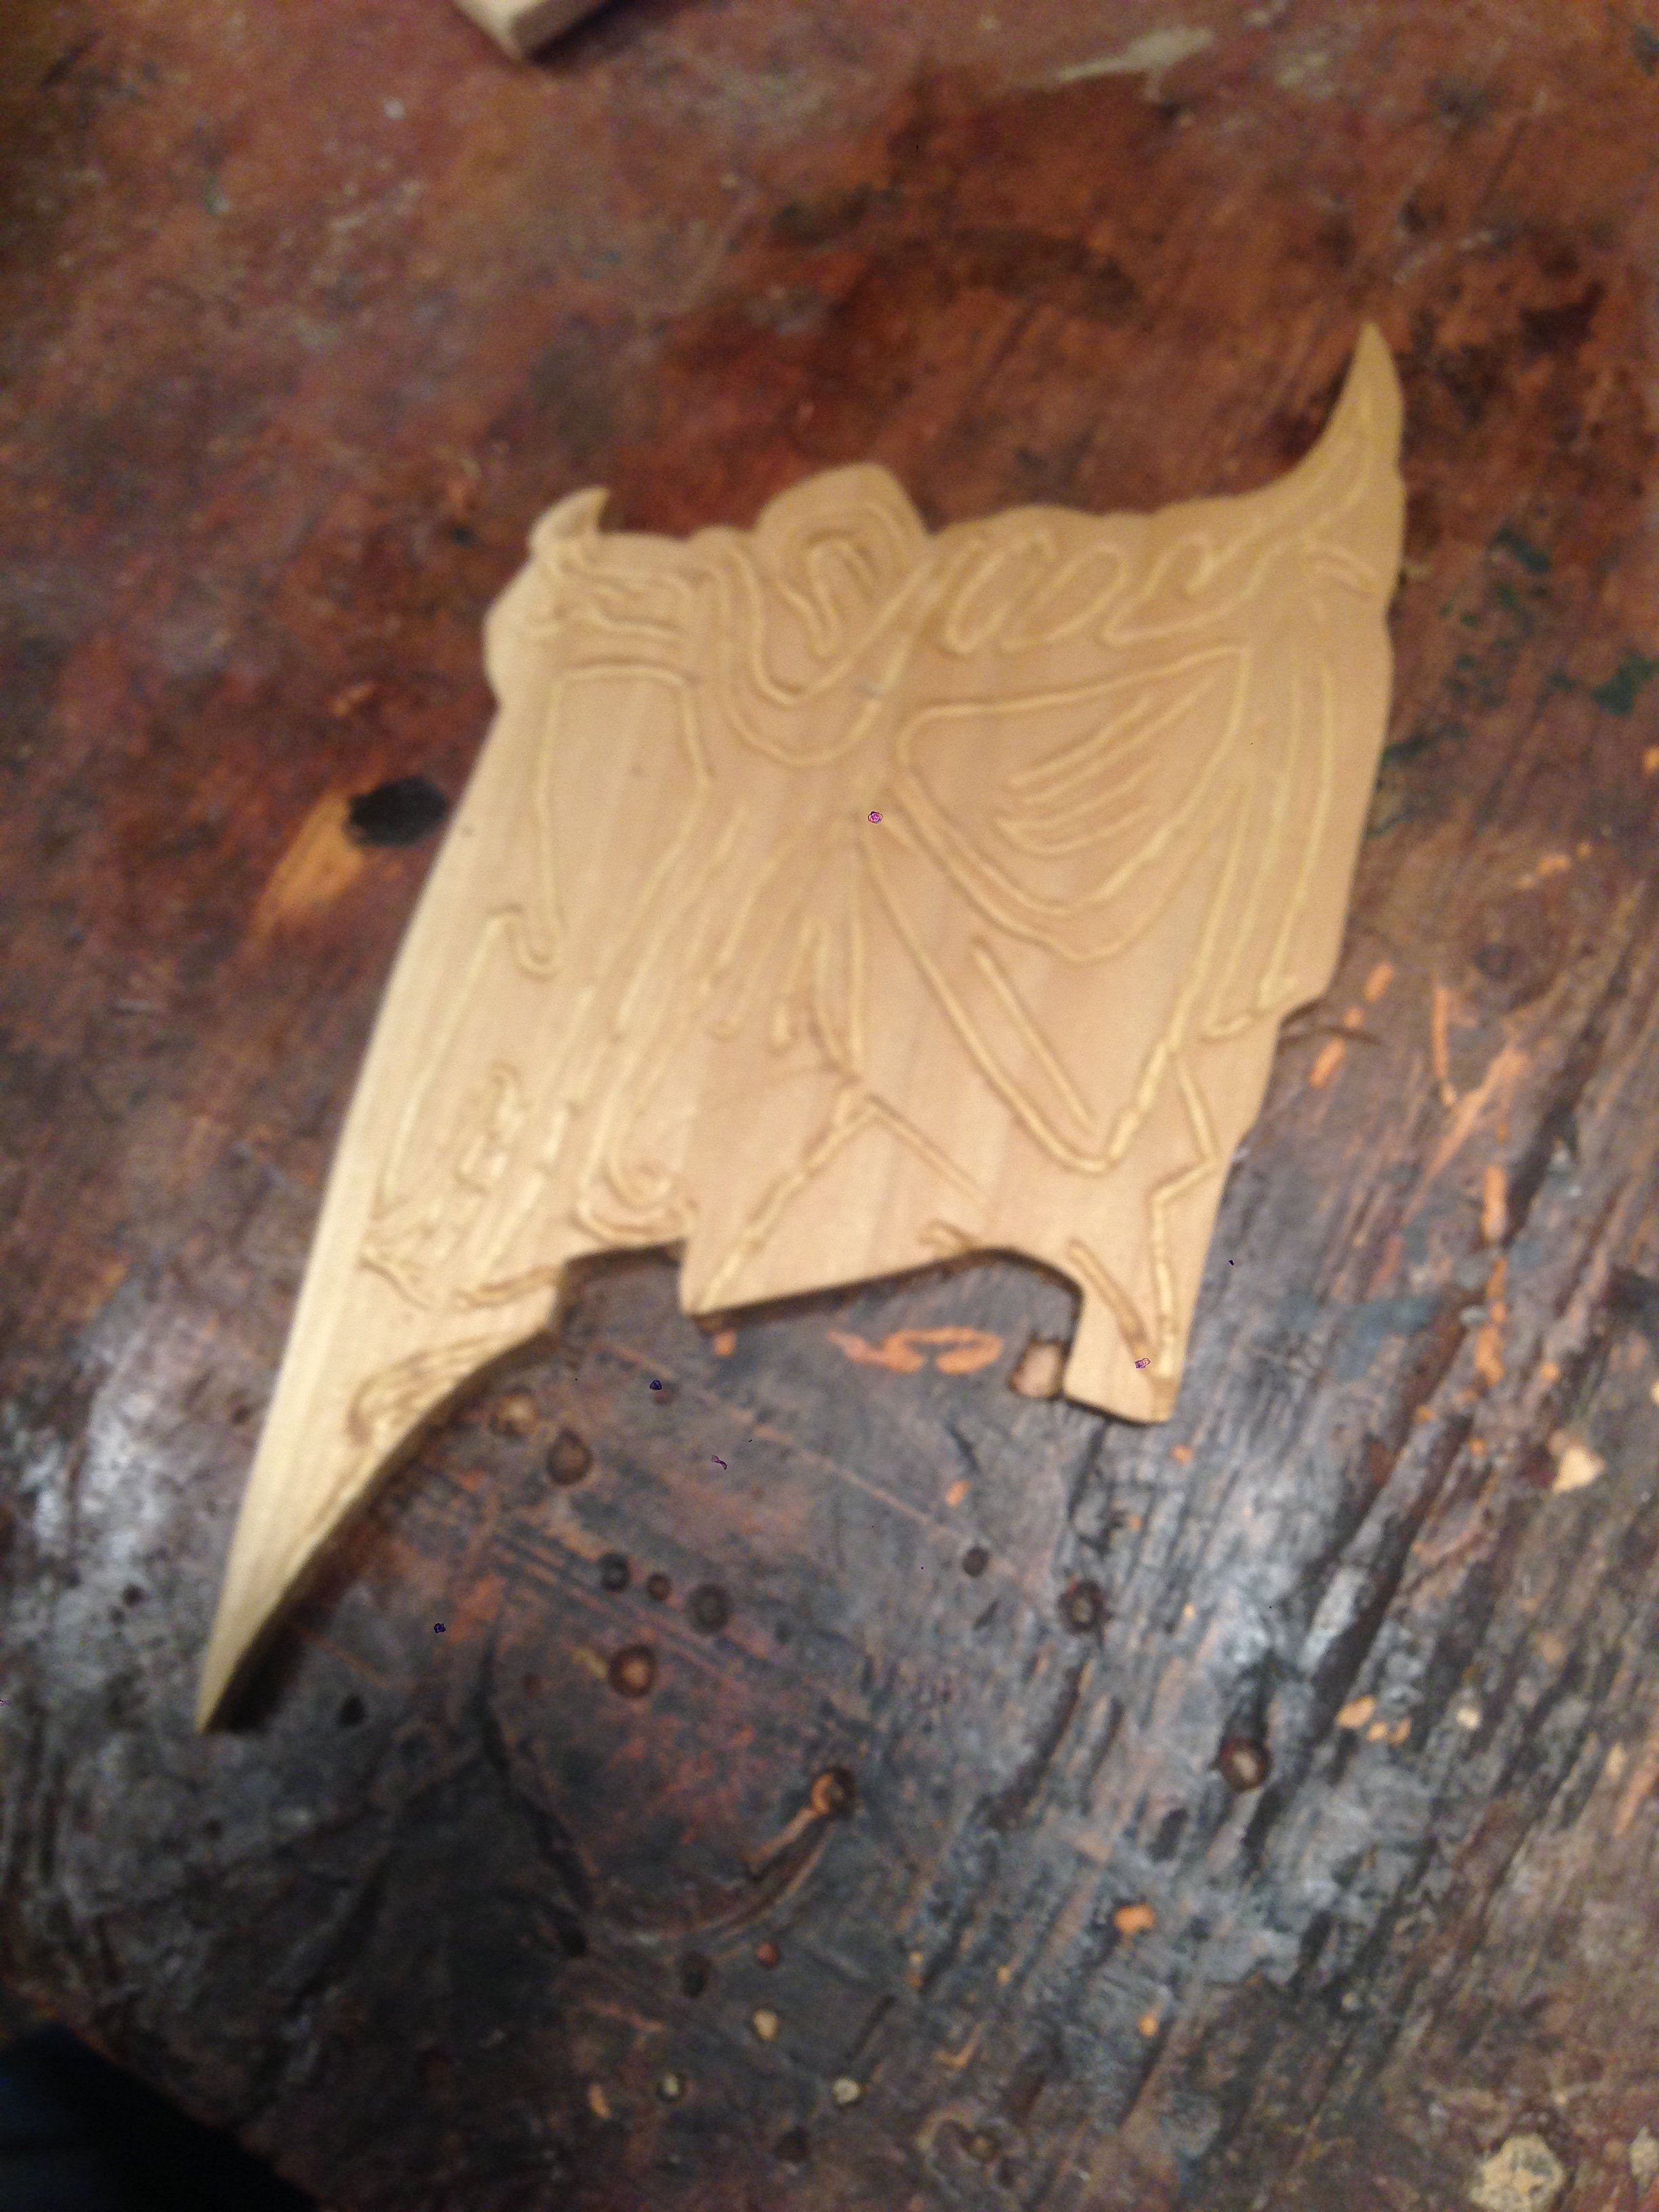 initial carving of loin cloth